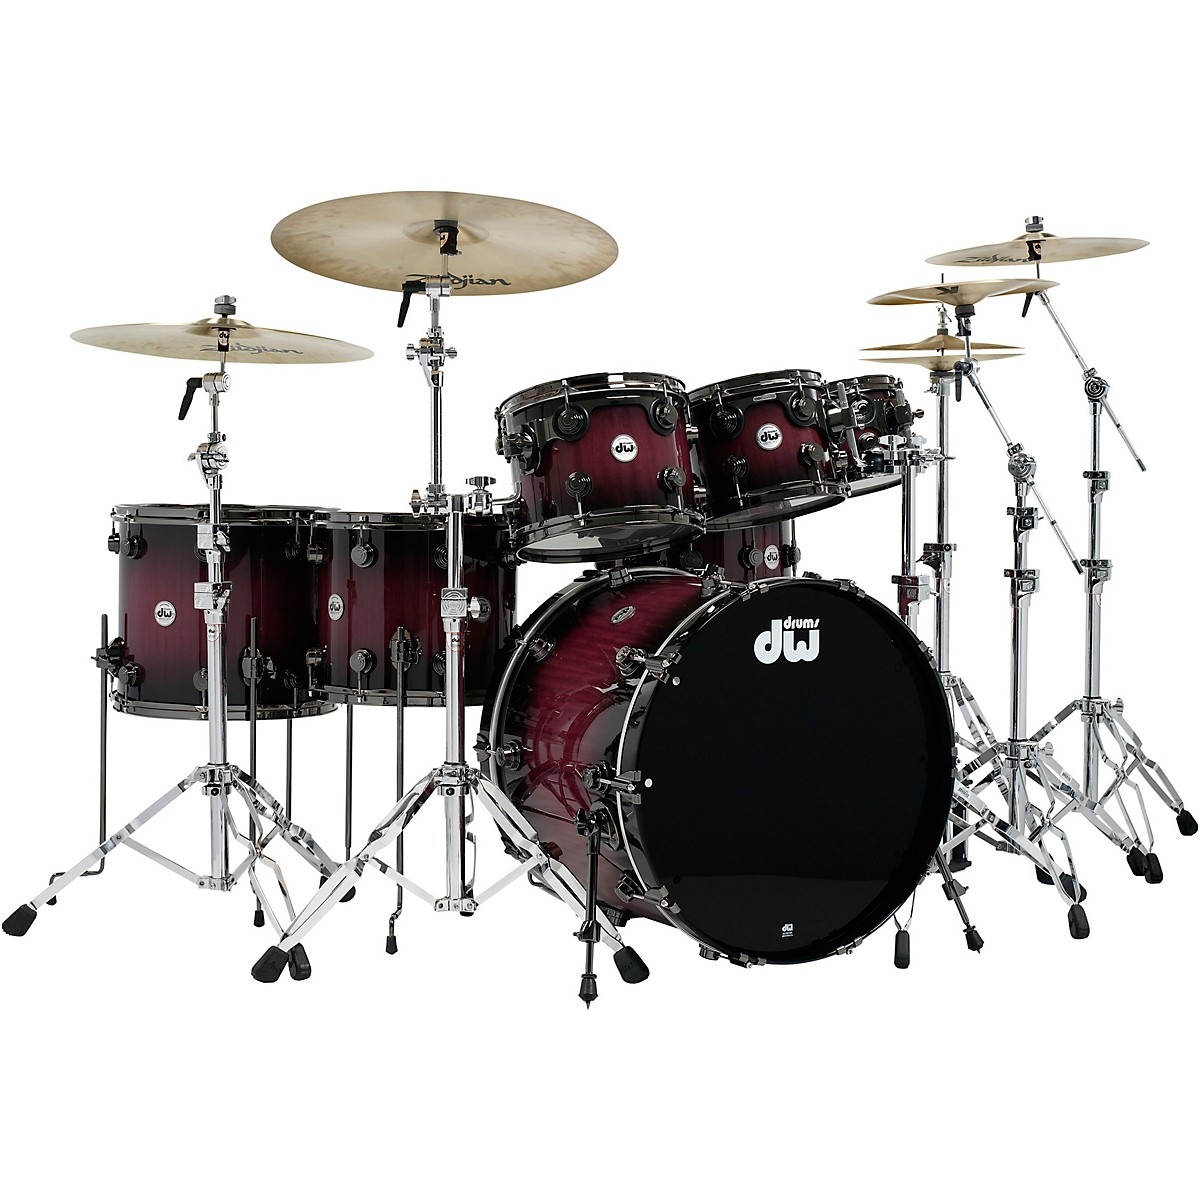 DW Collector's Series Purpleheart 7-Piece Lacquer Specialty Shell Pack Natural to Black Burst with Black Nickel Hardware